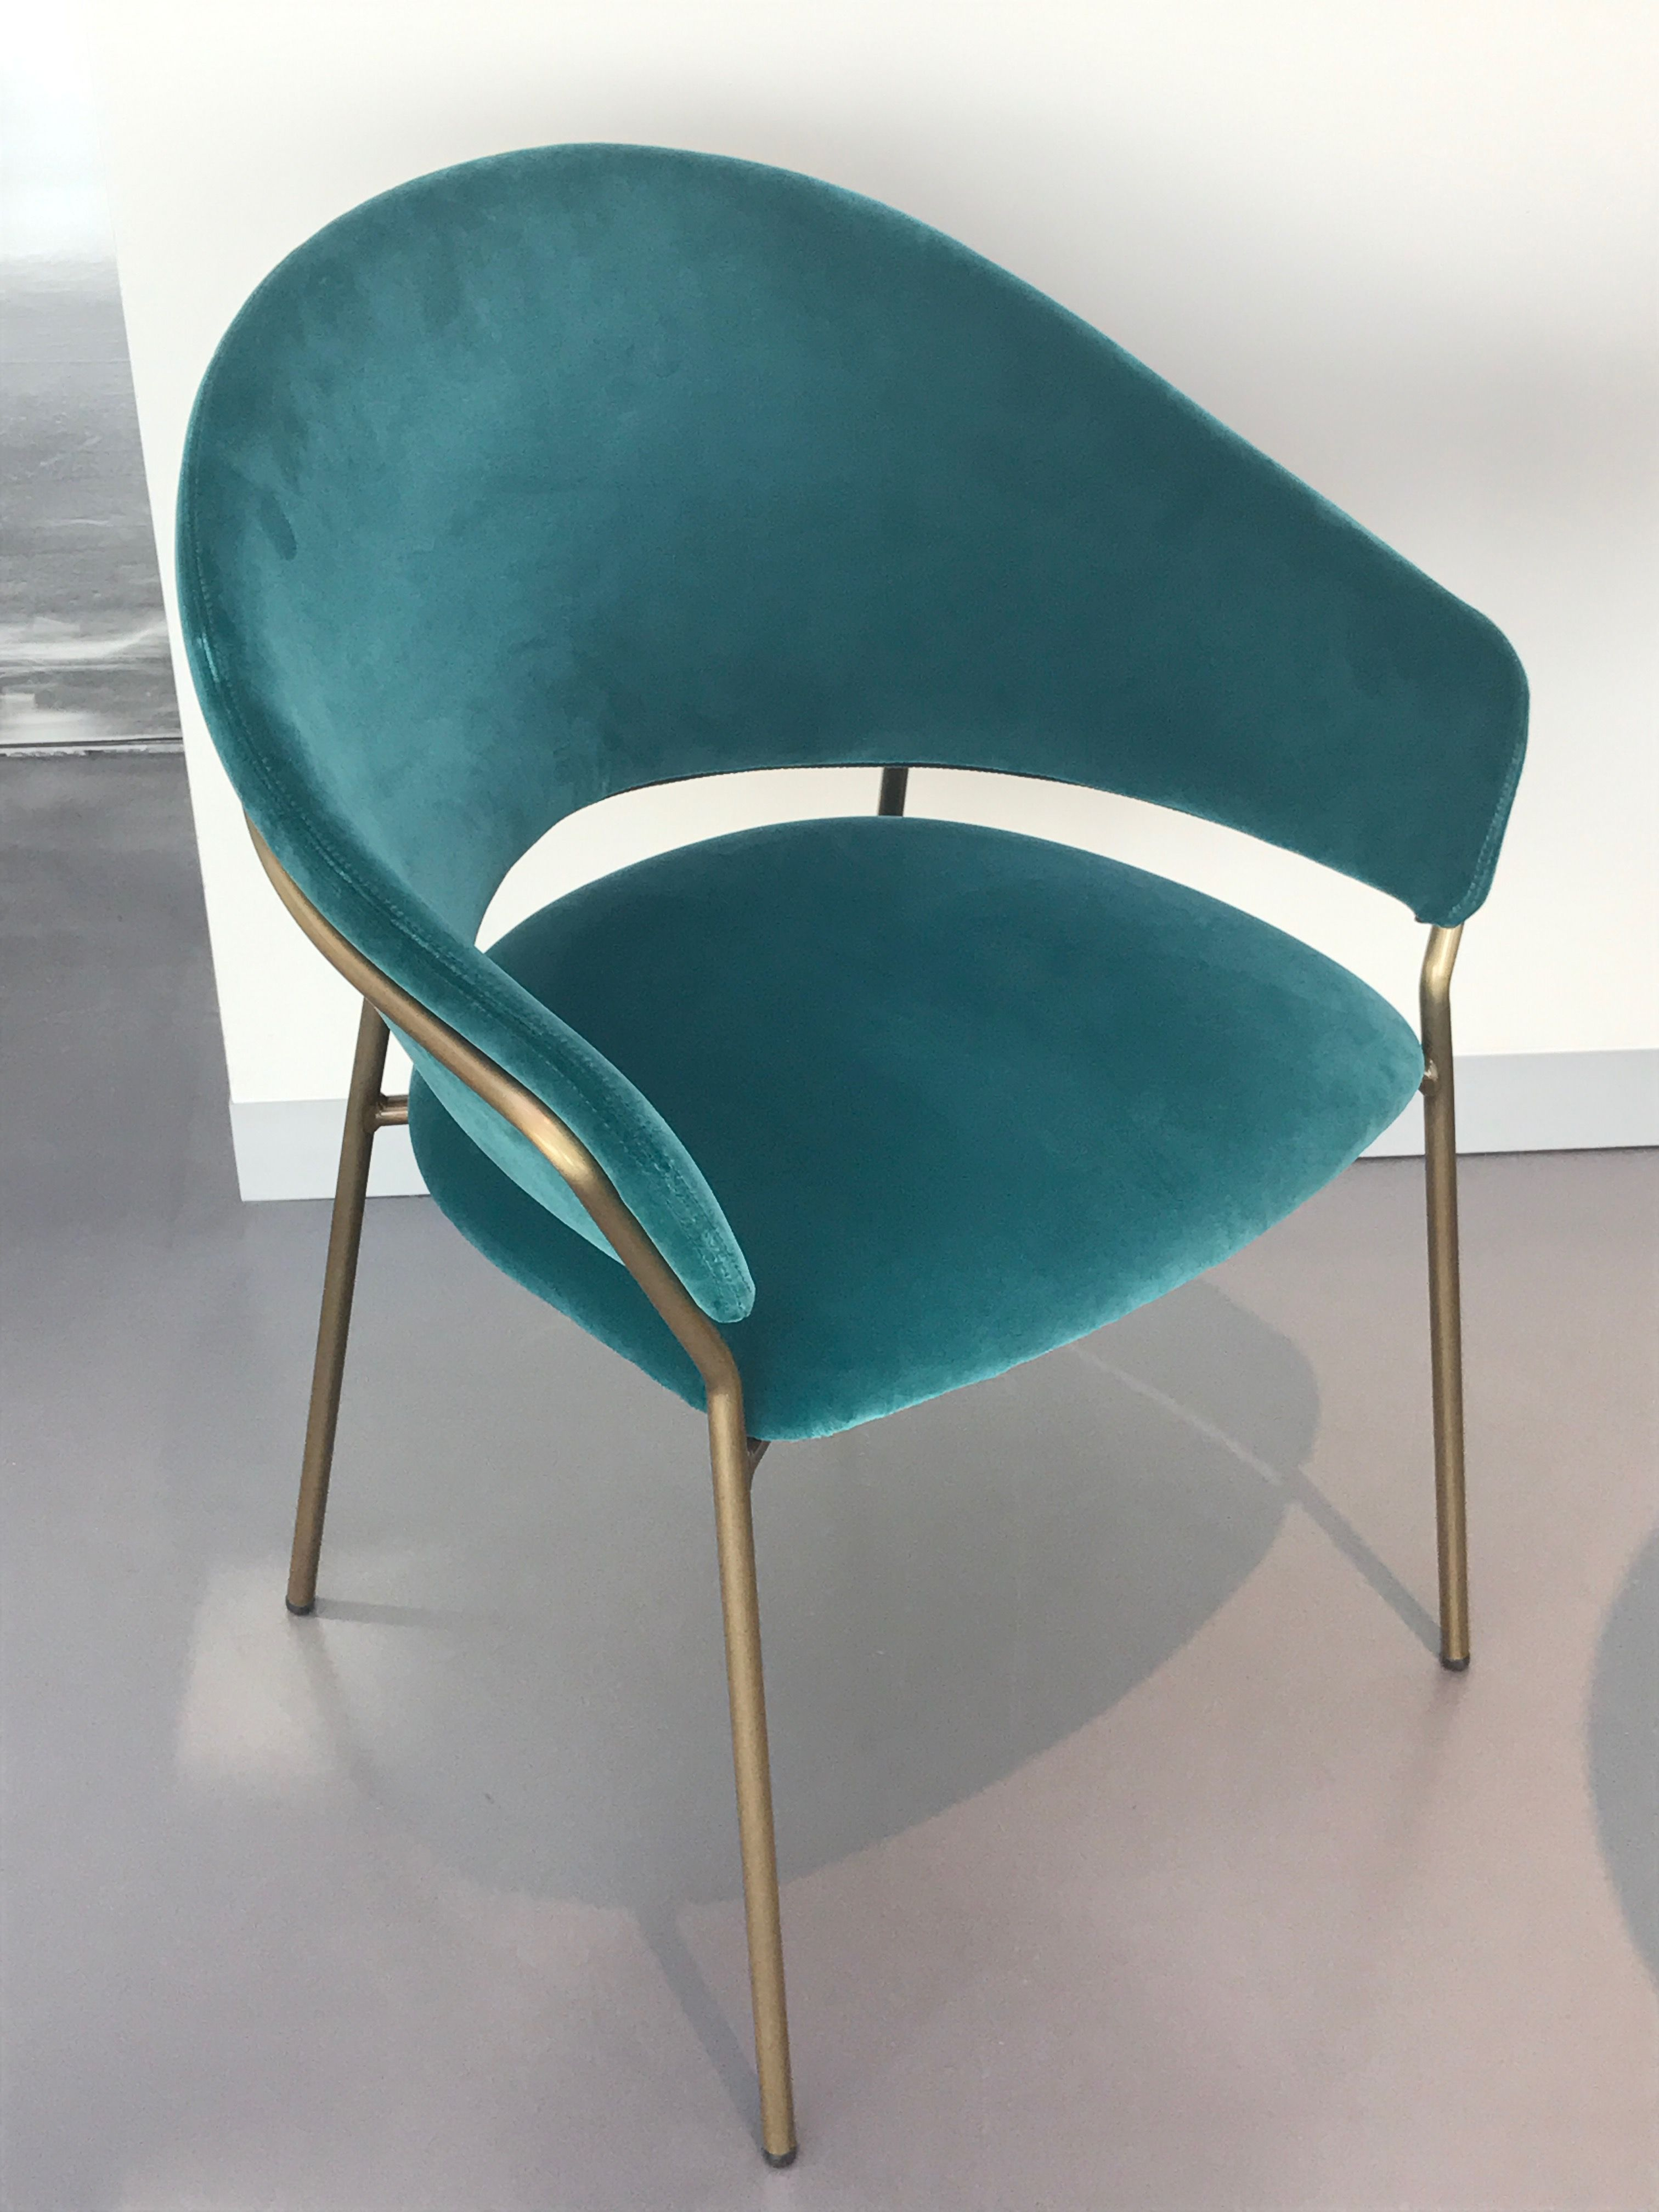 Groovy Pedrali Jazz In 2019 Chair Dining Chairs Metal Chairs Creativecarmelina Interior Chair Design Creativecarmelinacom